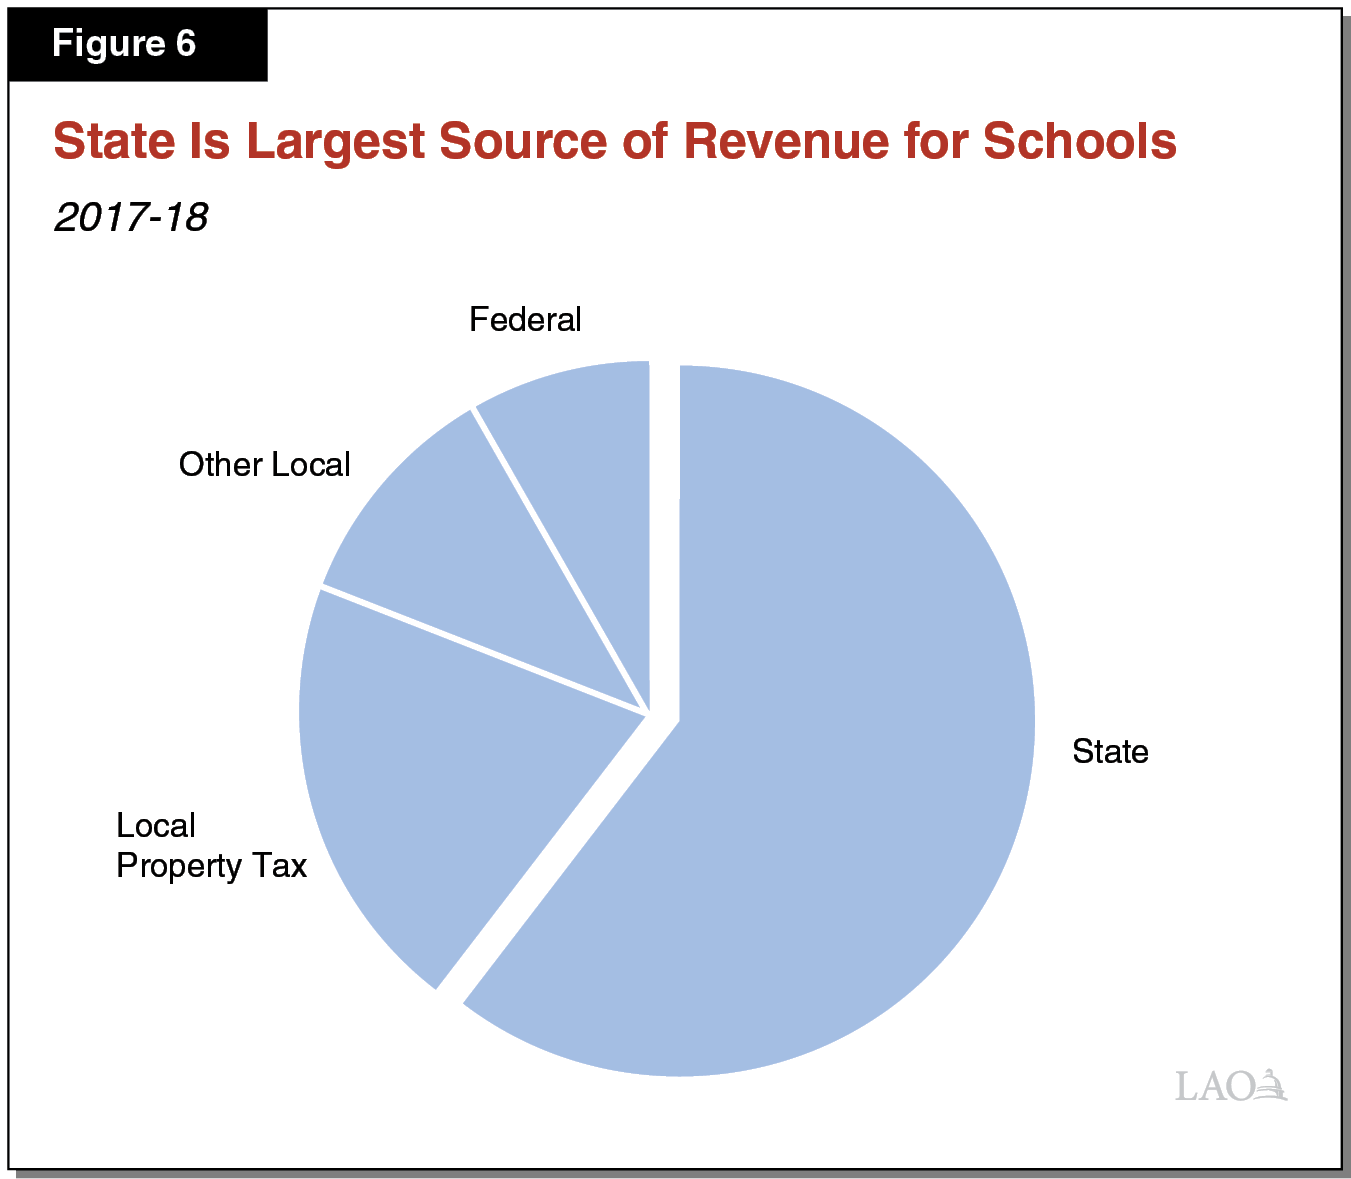 Figure 6 - State Is Largest Source of Revenue for Schools